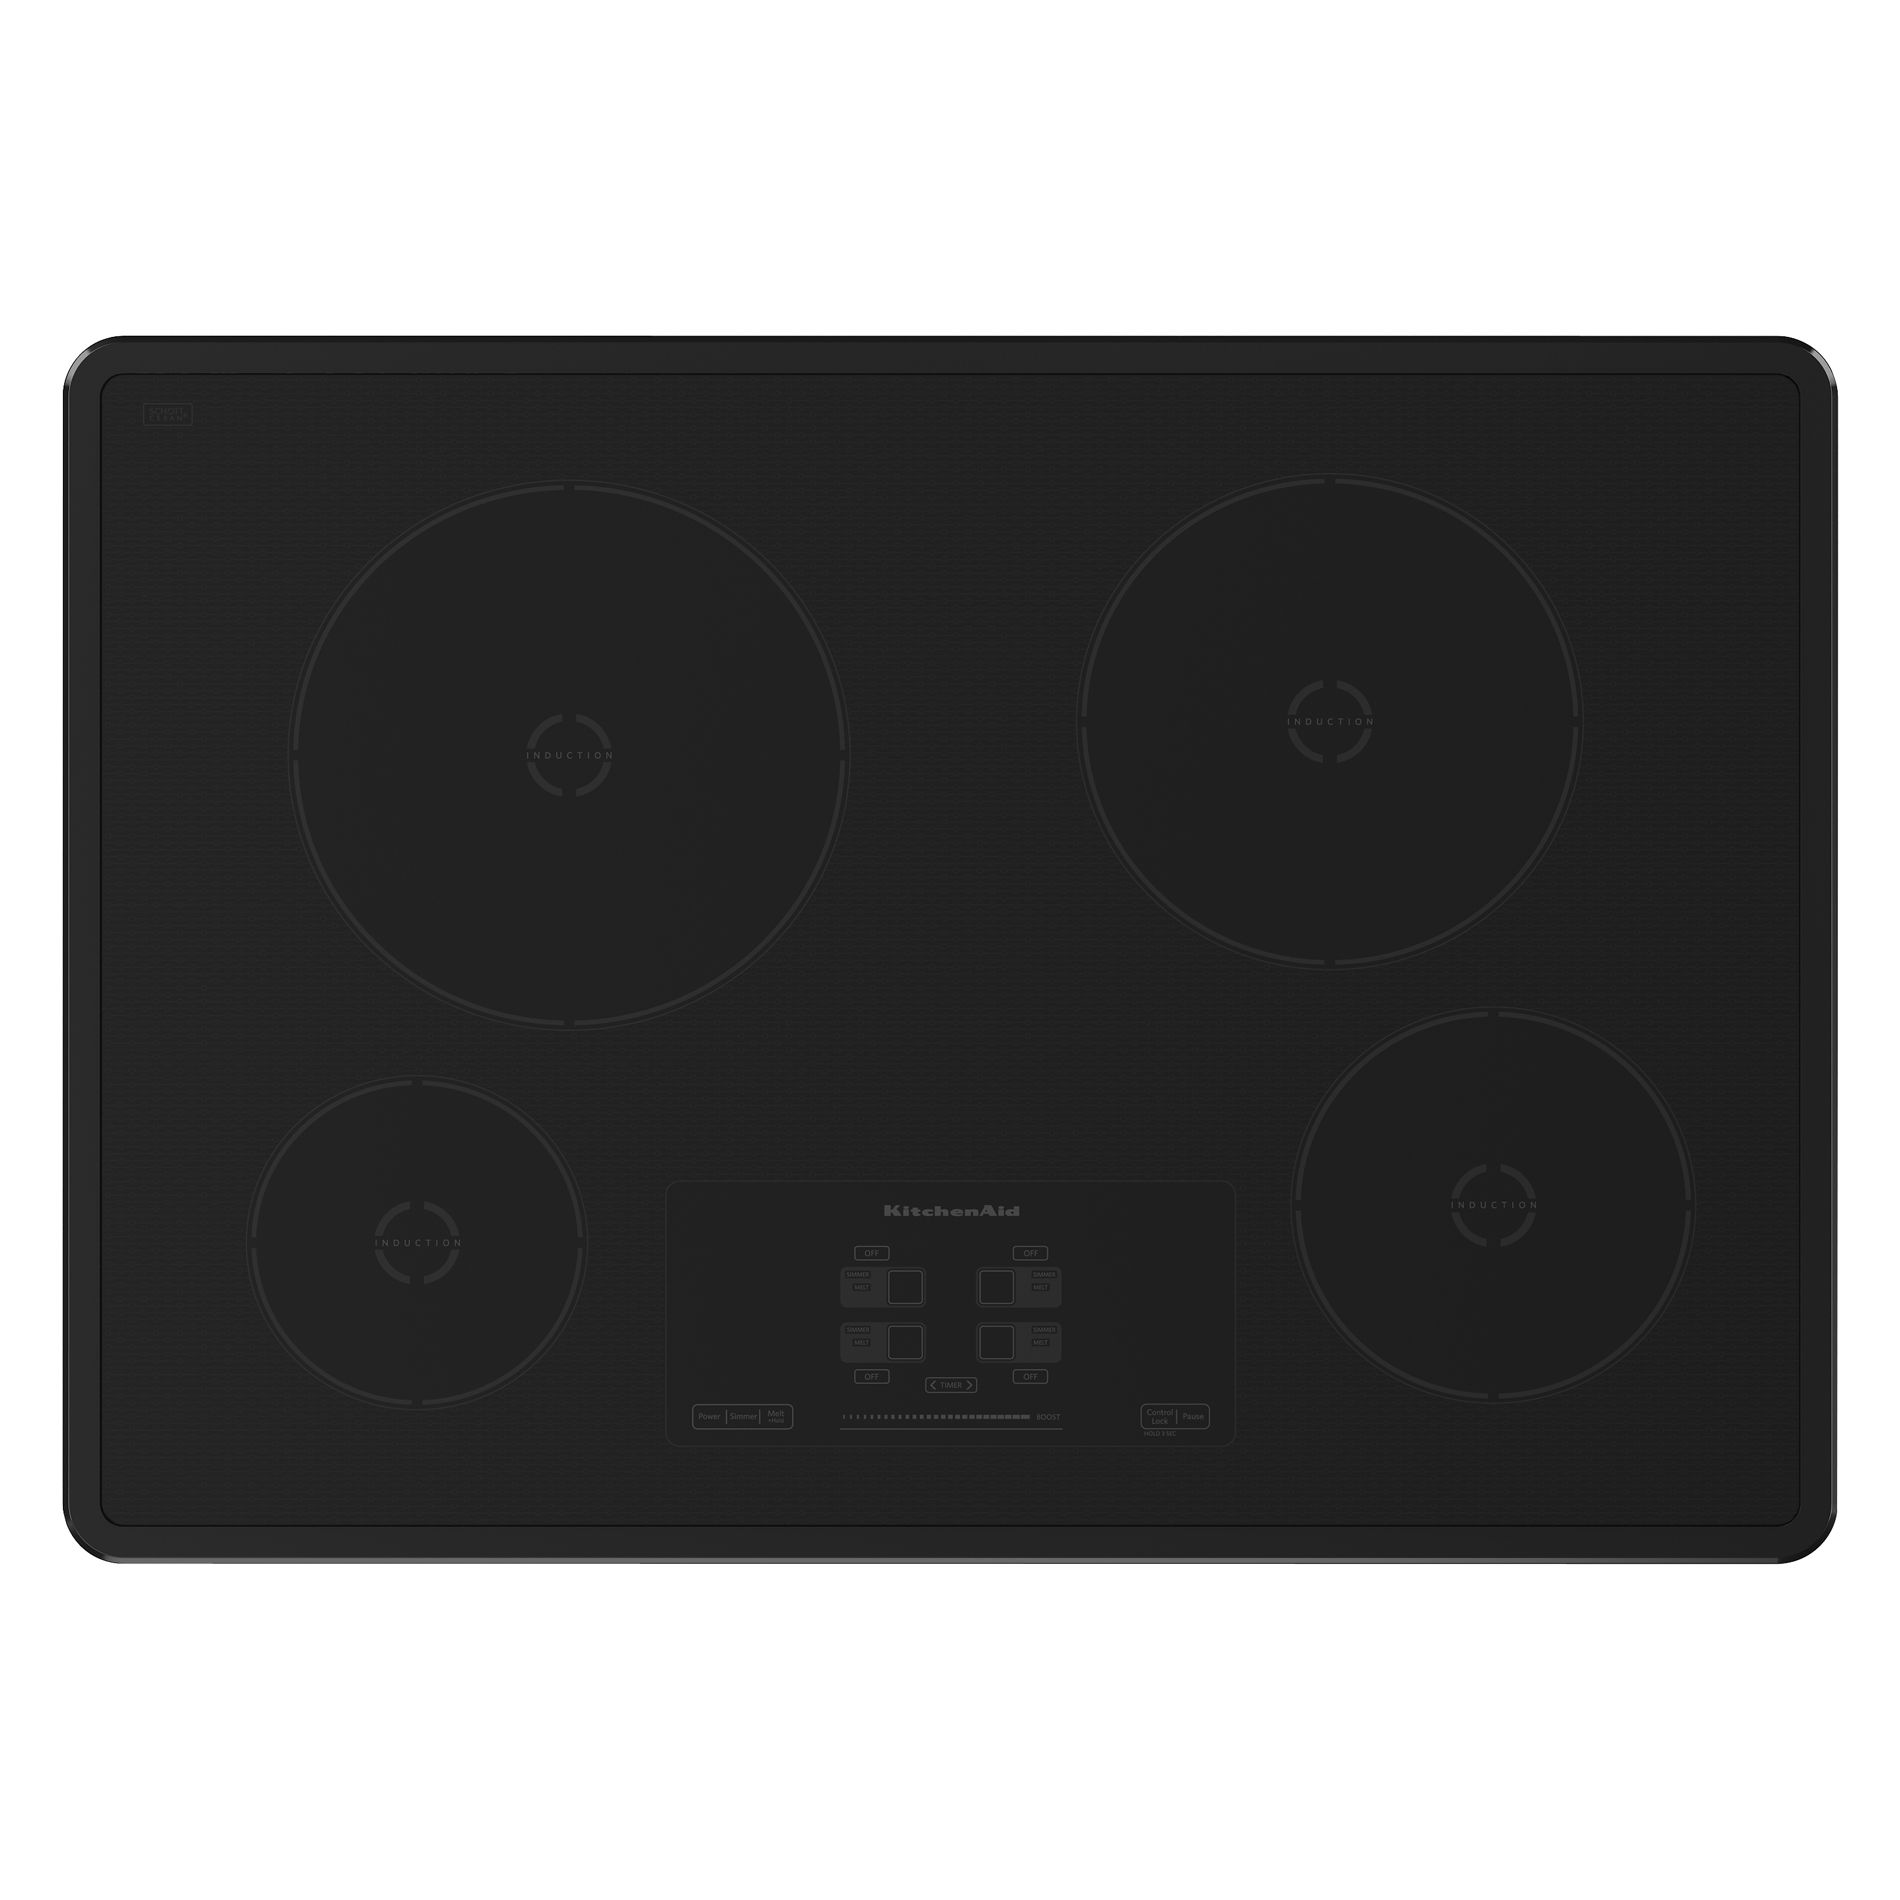 KitchenAid KICU500XBL 30 Electric Induction Cooktop